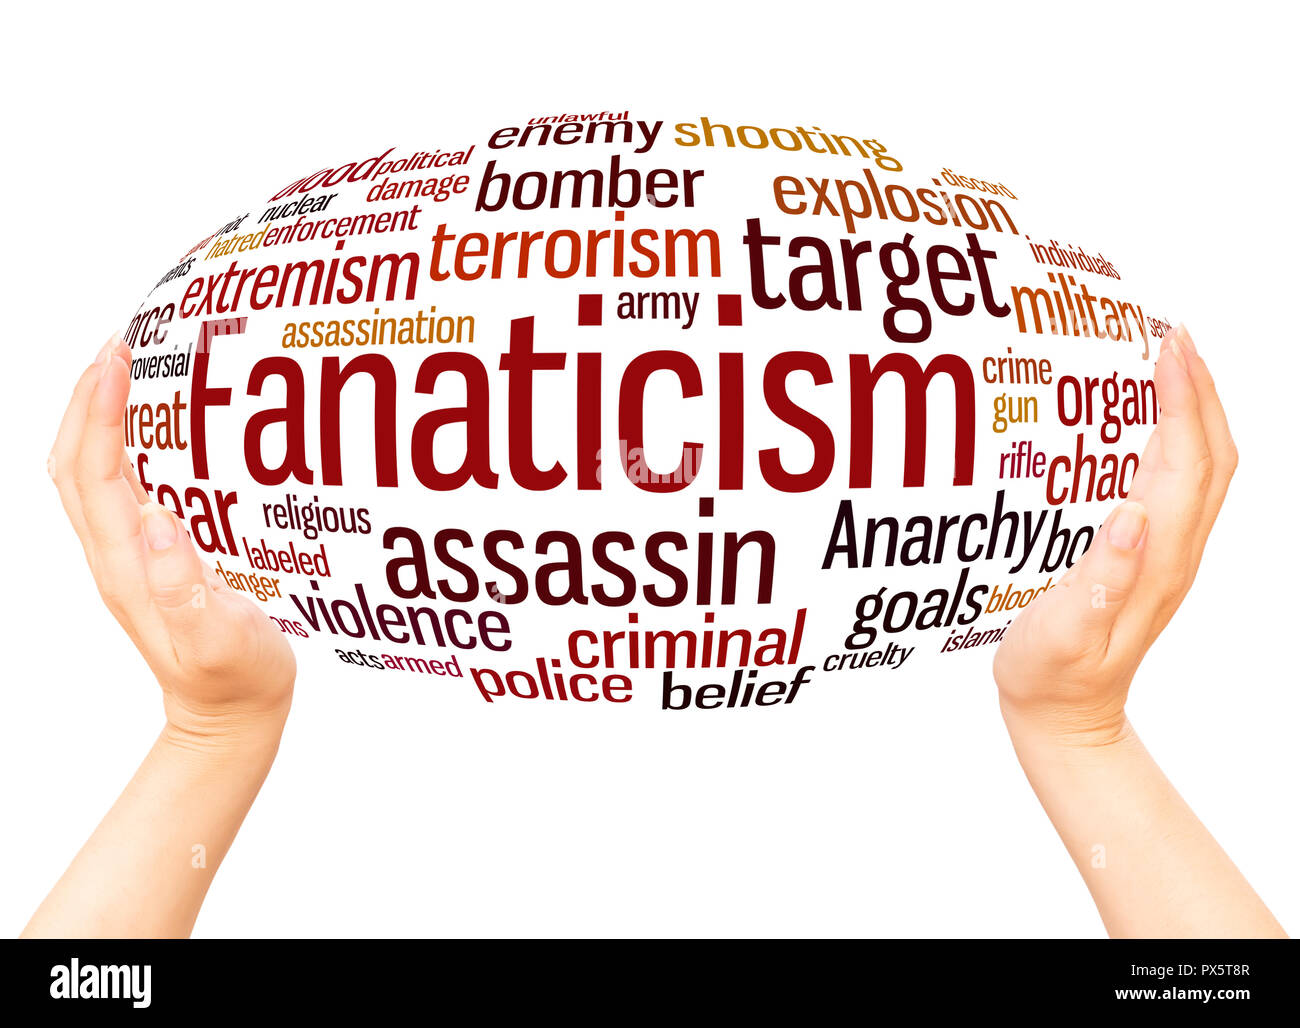 Fanaticism word cloud hand sphere concept on white background. - Stock Image